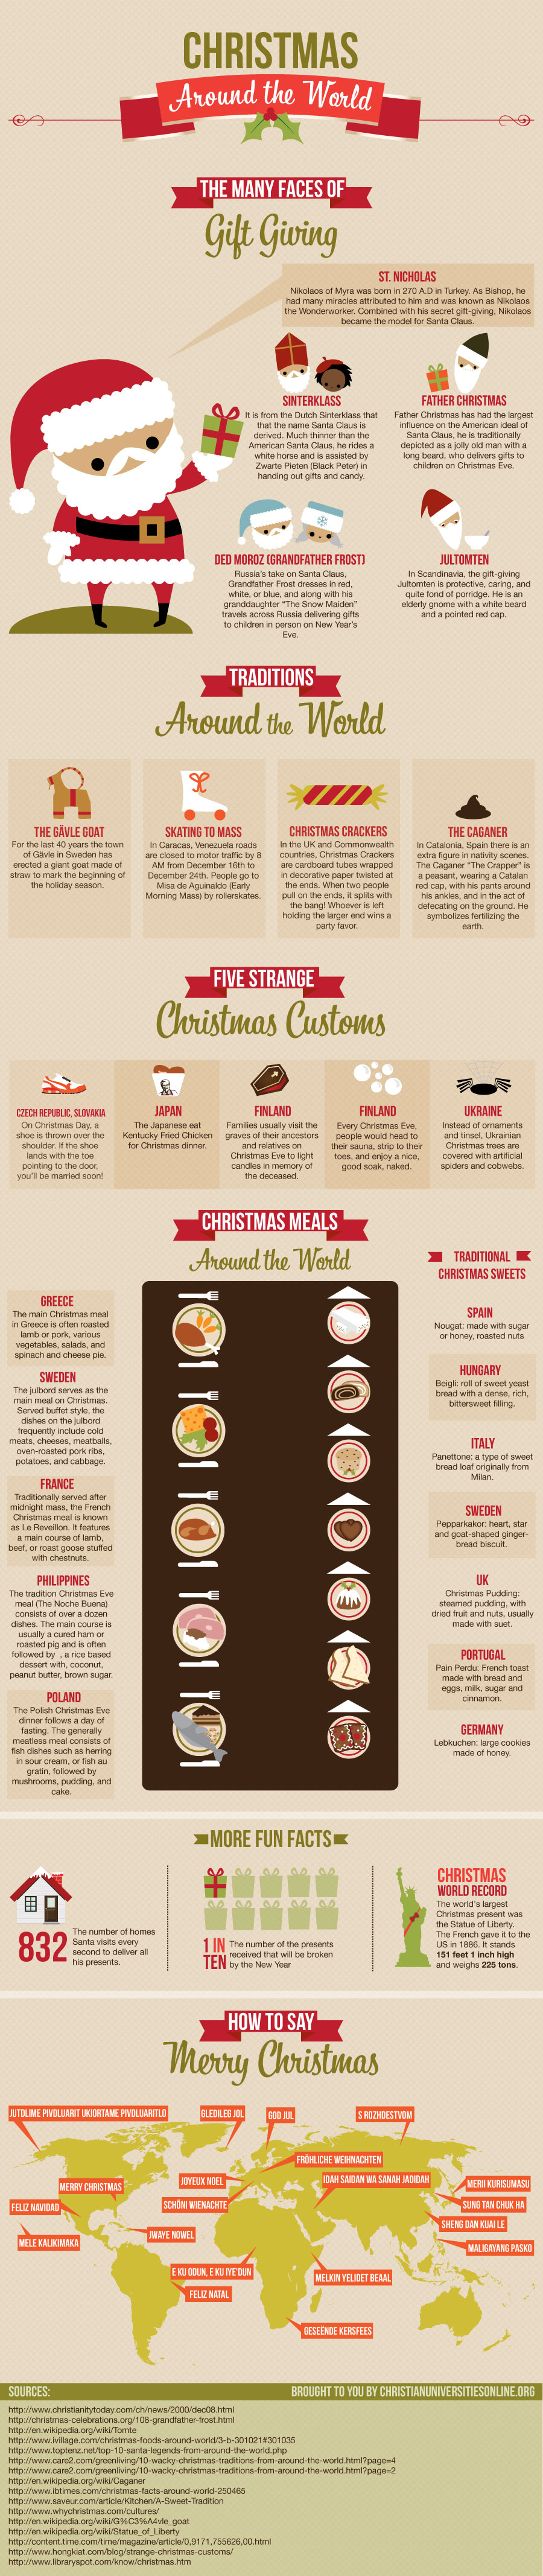 Christmas Traditions Around the World-Infographic